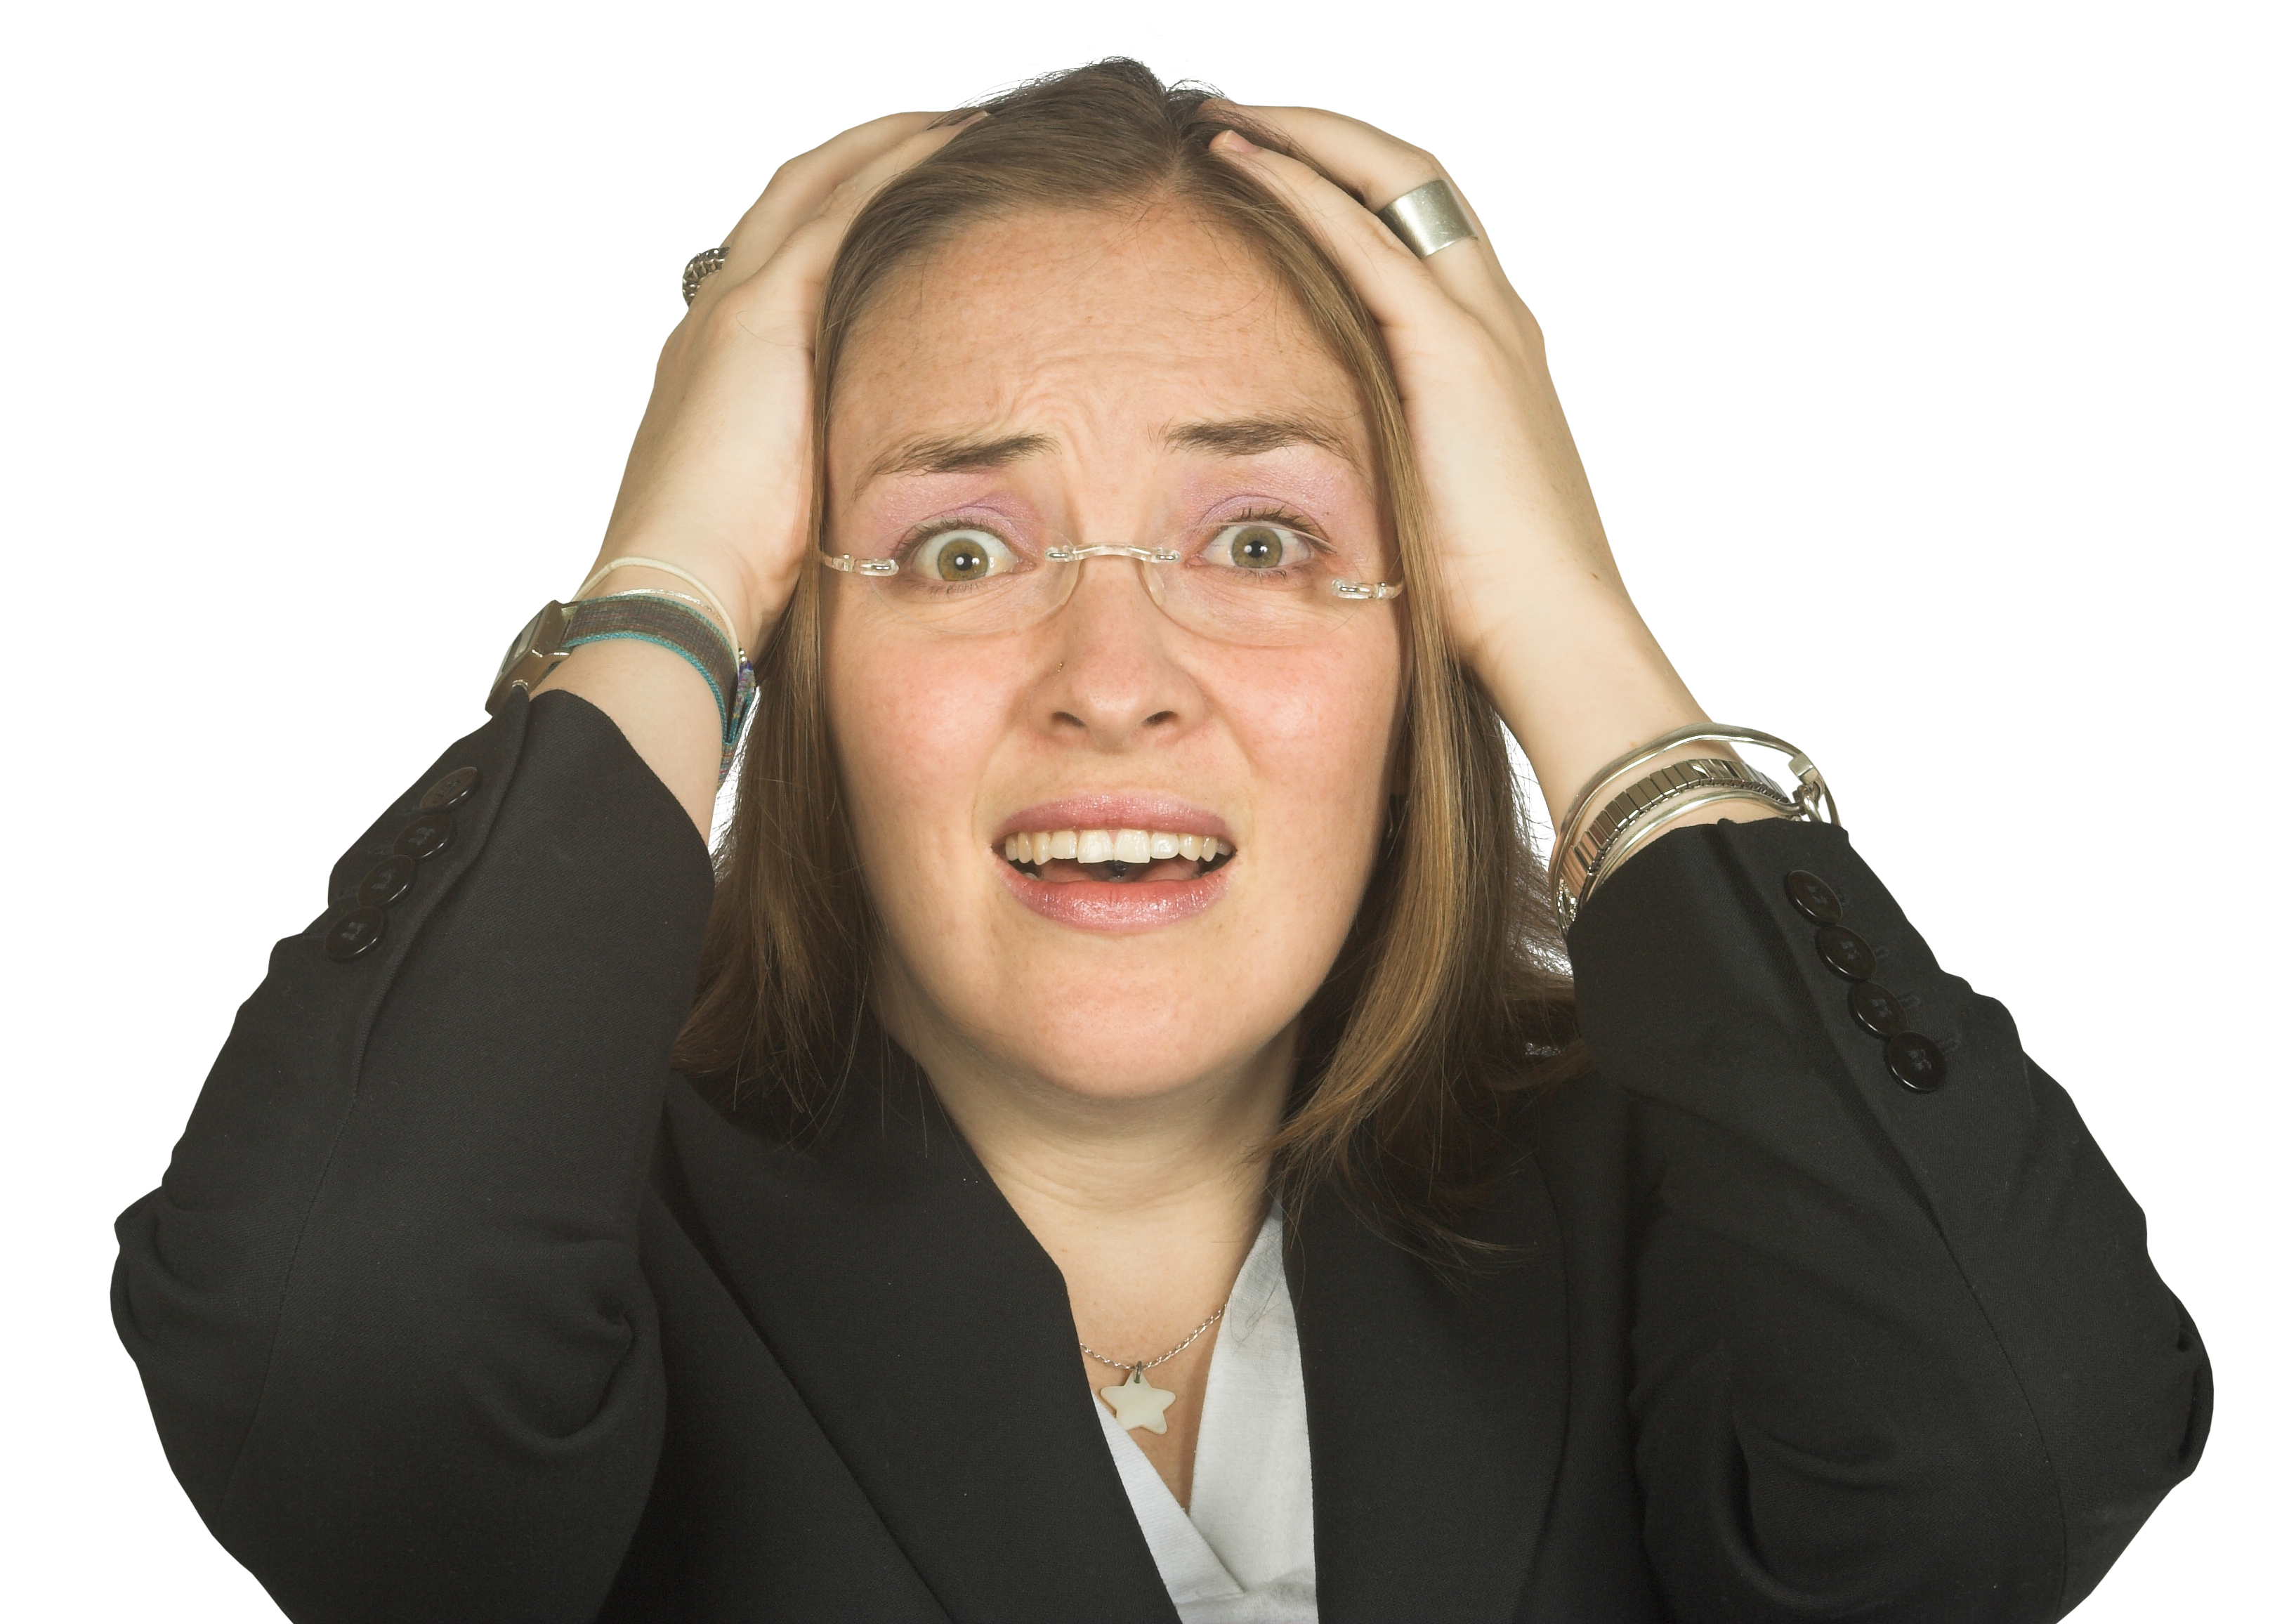 business woman making common adwords mistakes in shock